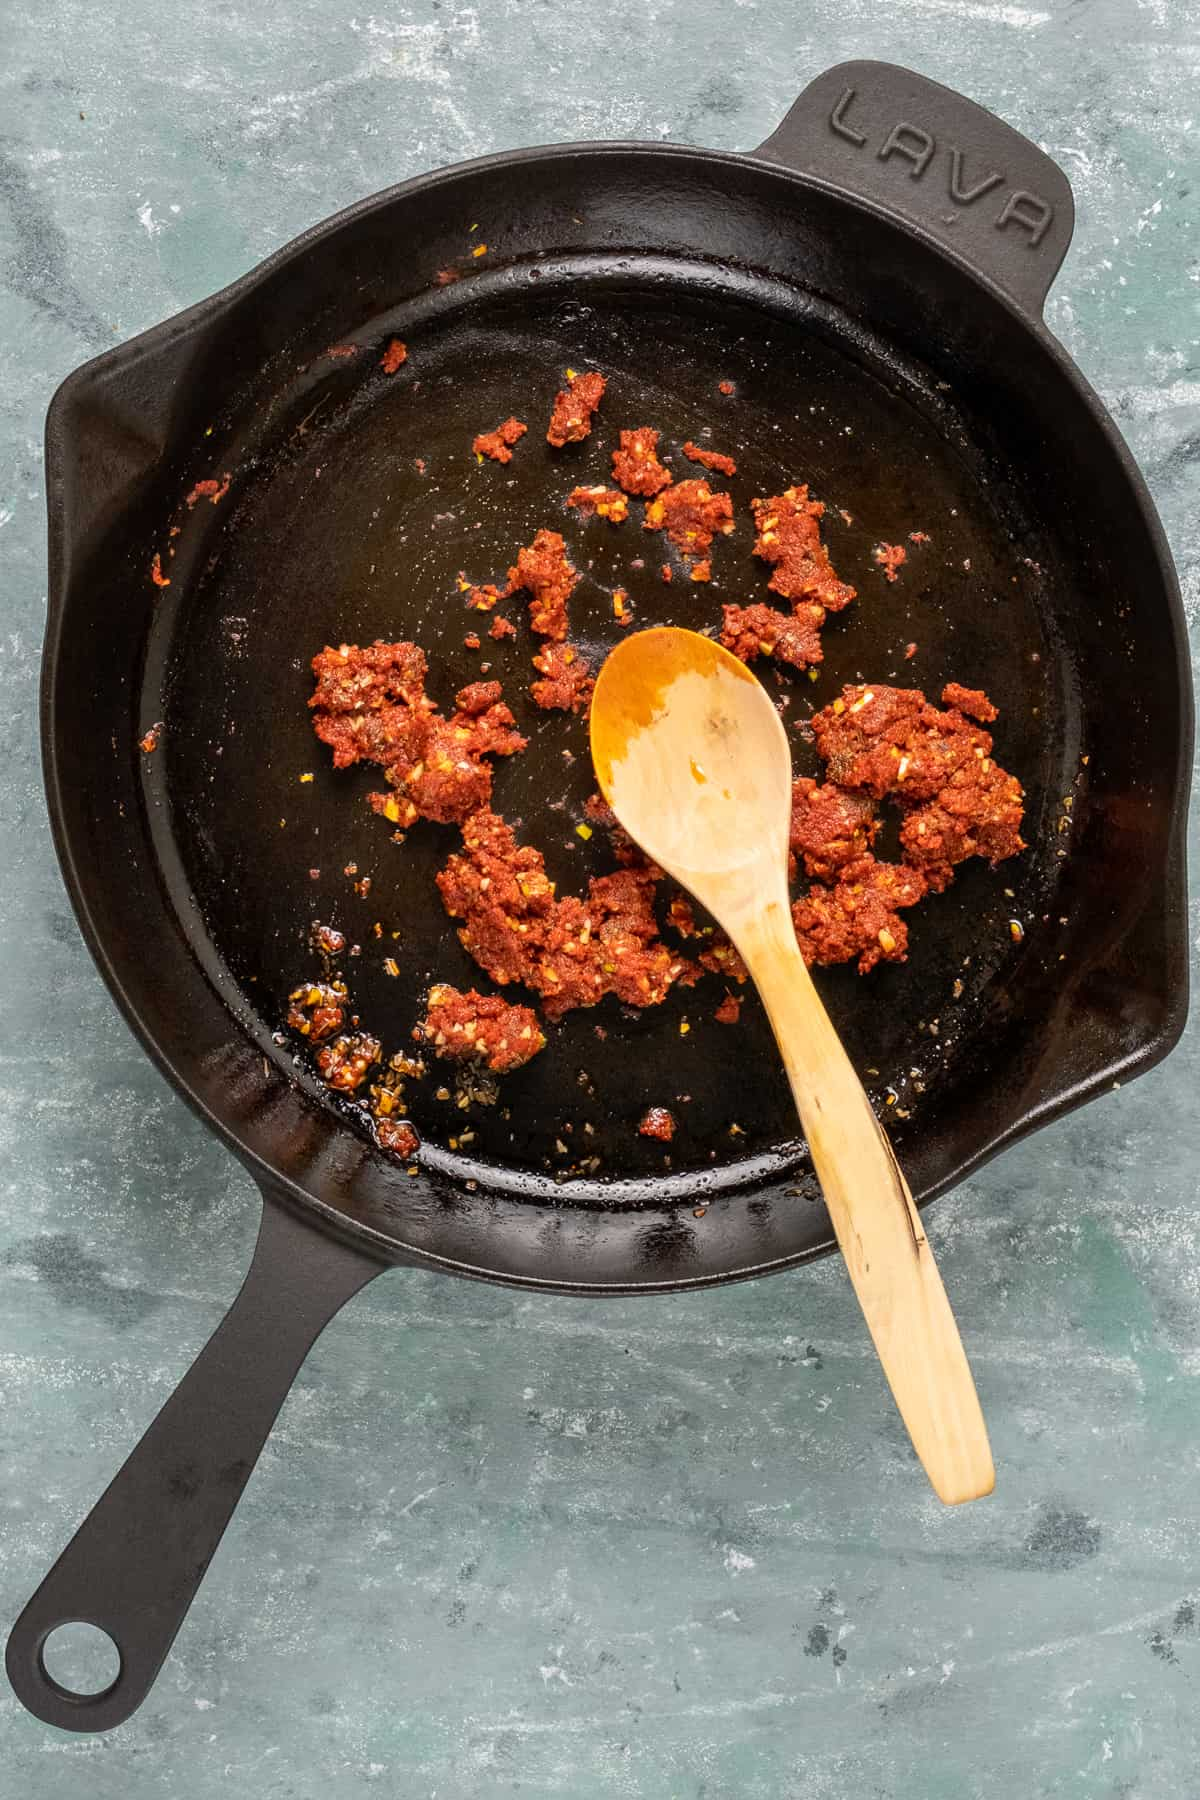 Spices and tomato paste cooking in a cast iron pan with a spoon inside it.